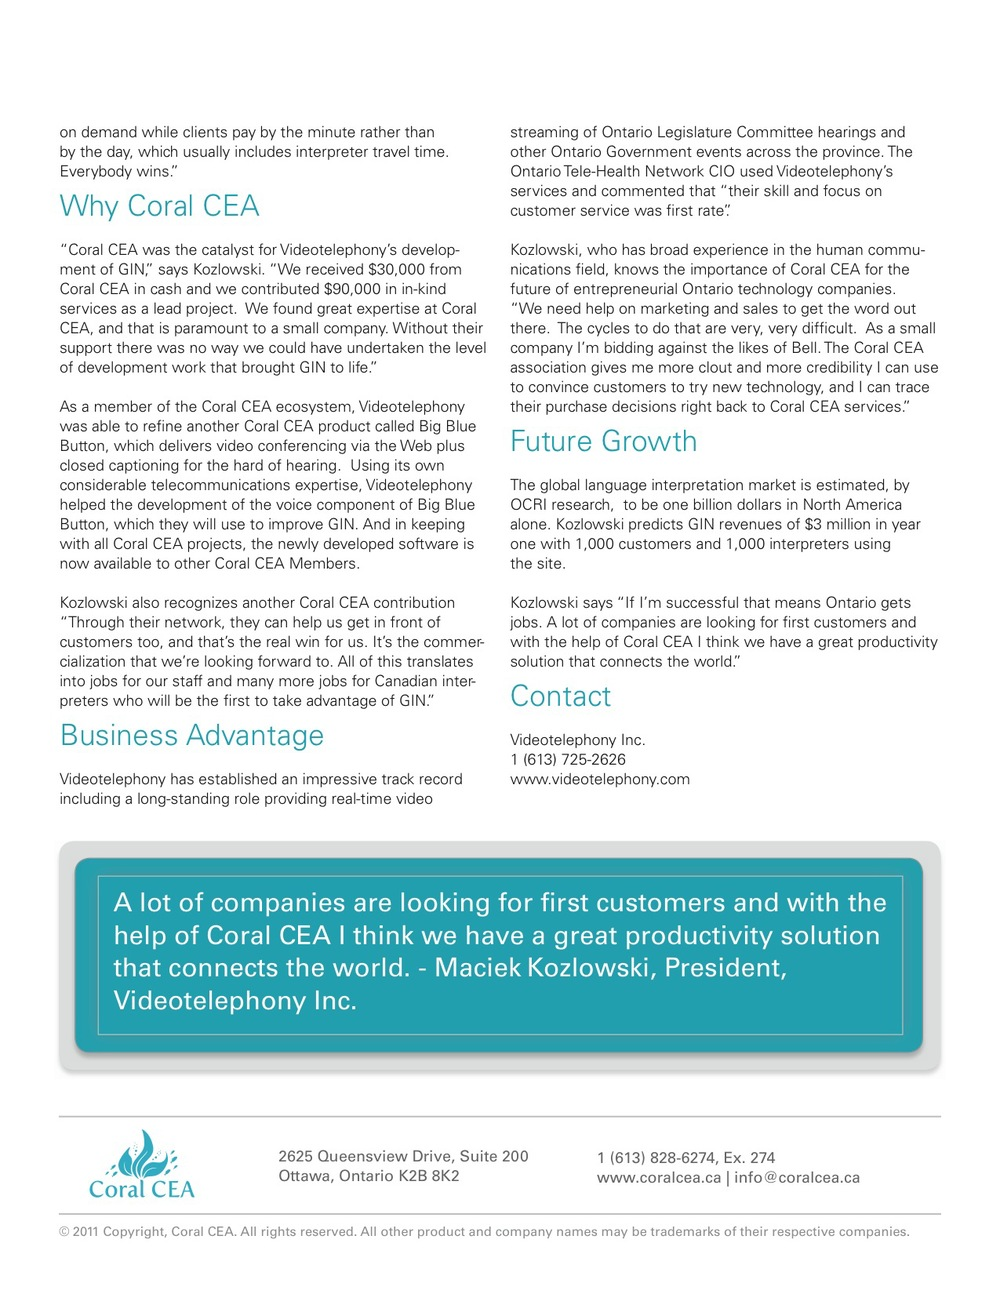 2011_04_CoralCEA_Videotelephony_view-page2.jpg